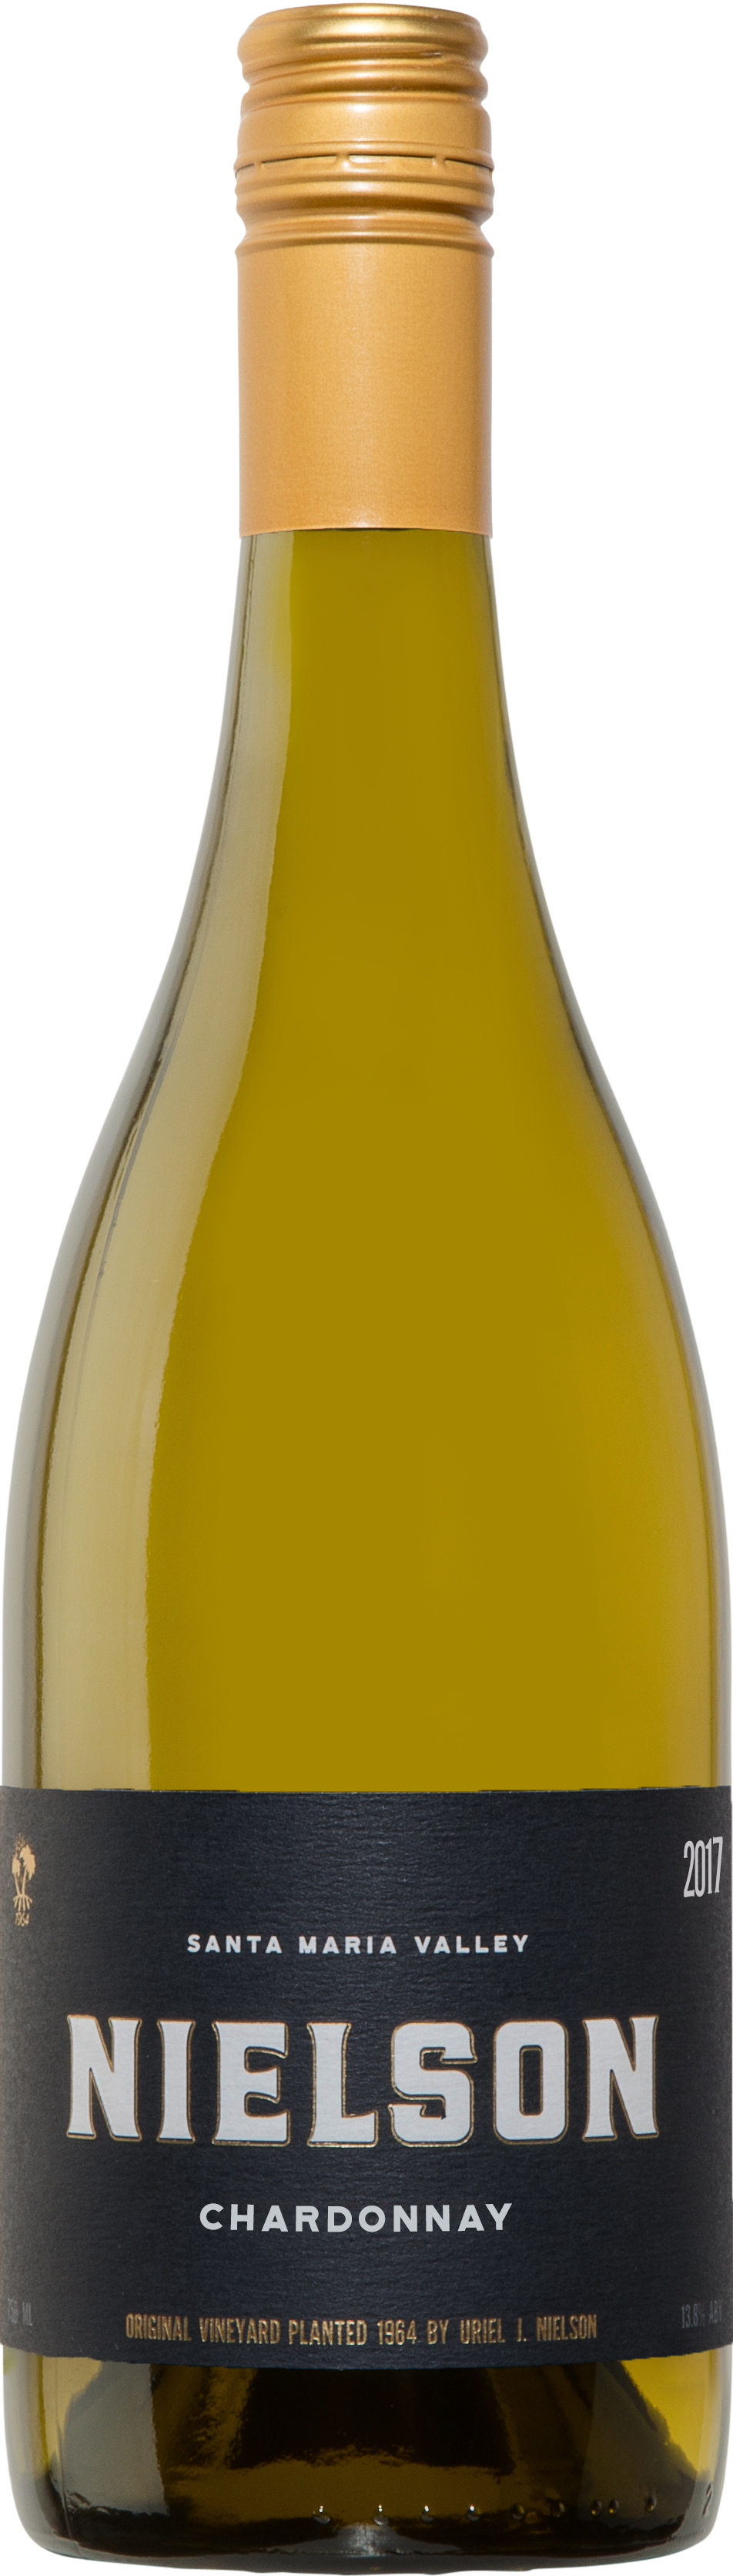 Nielson Chardonnay Bottle Shot